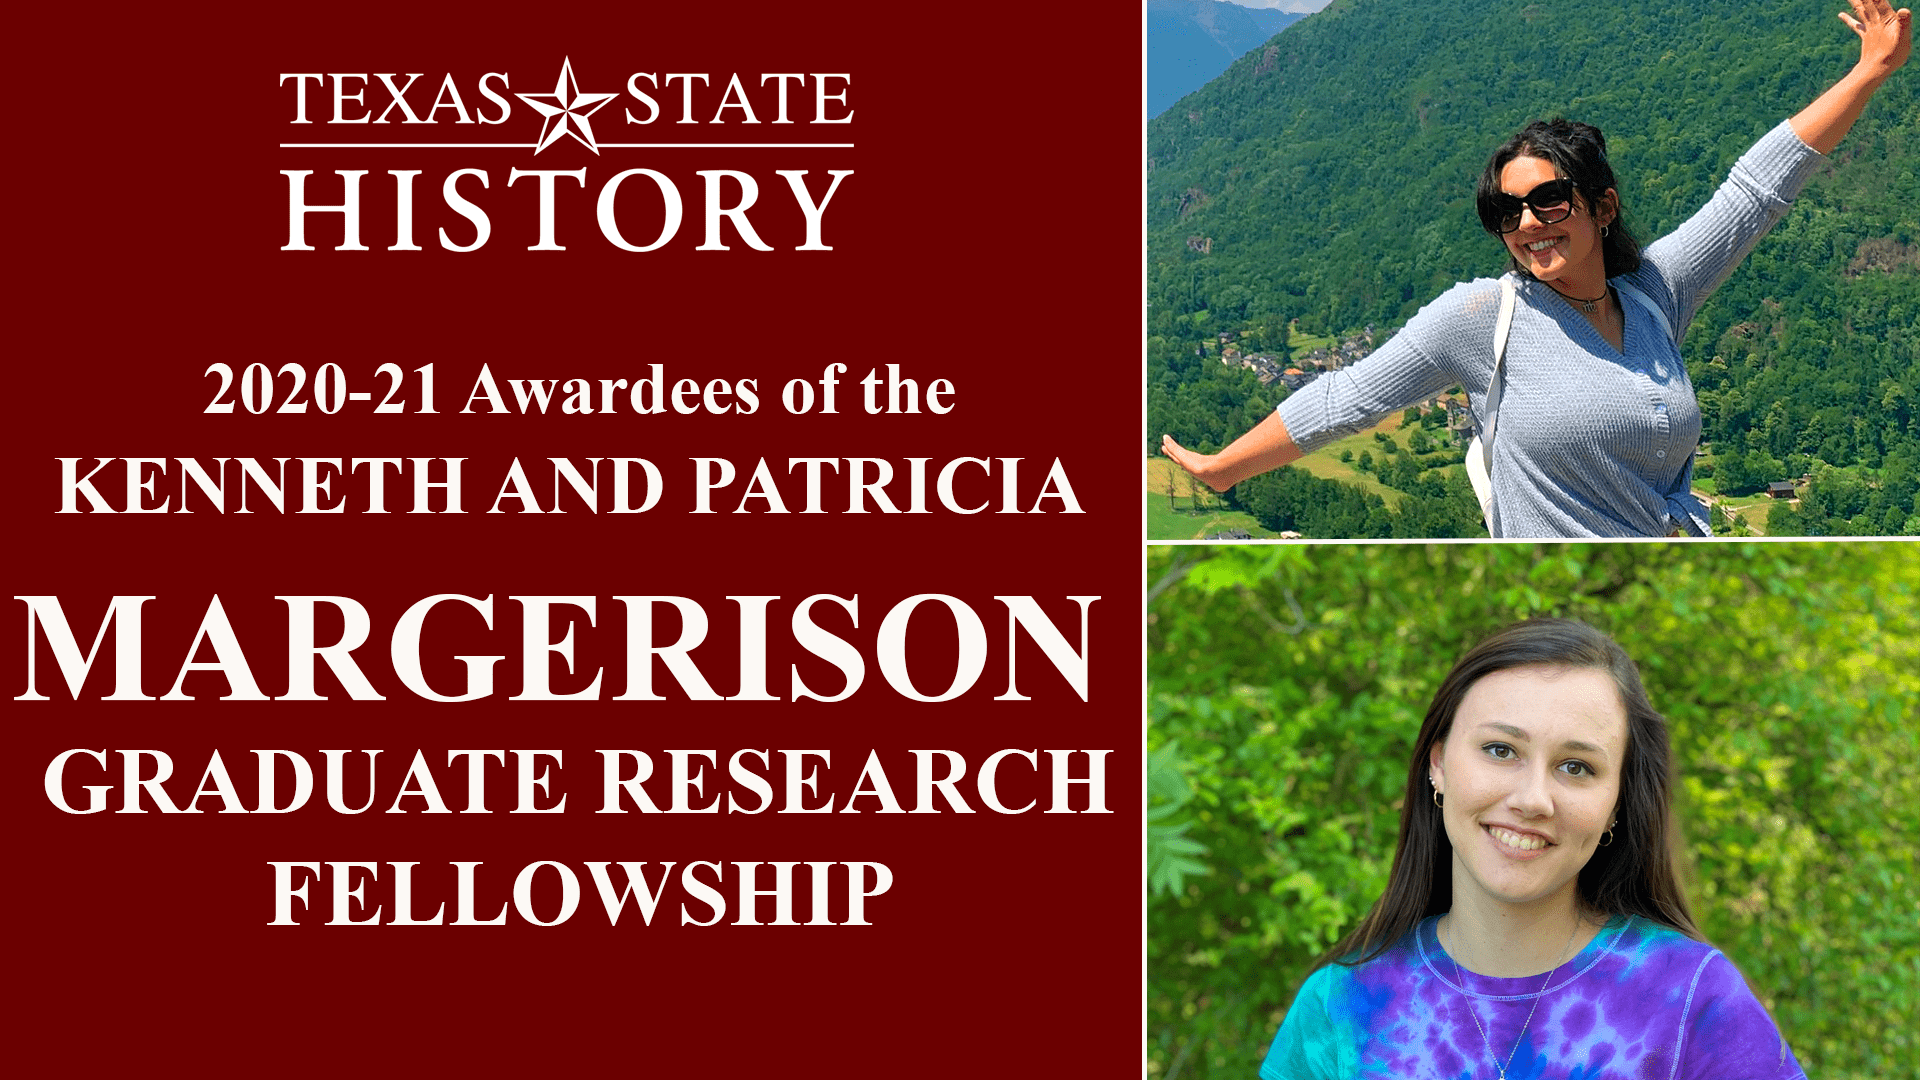 Photos of Margerison Fellowship awardees